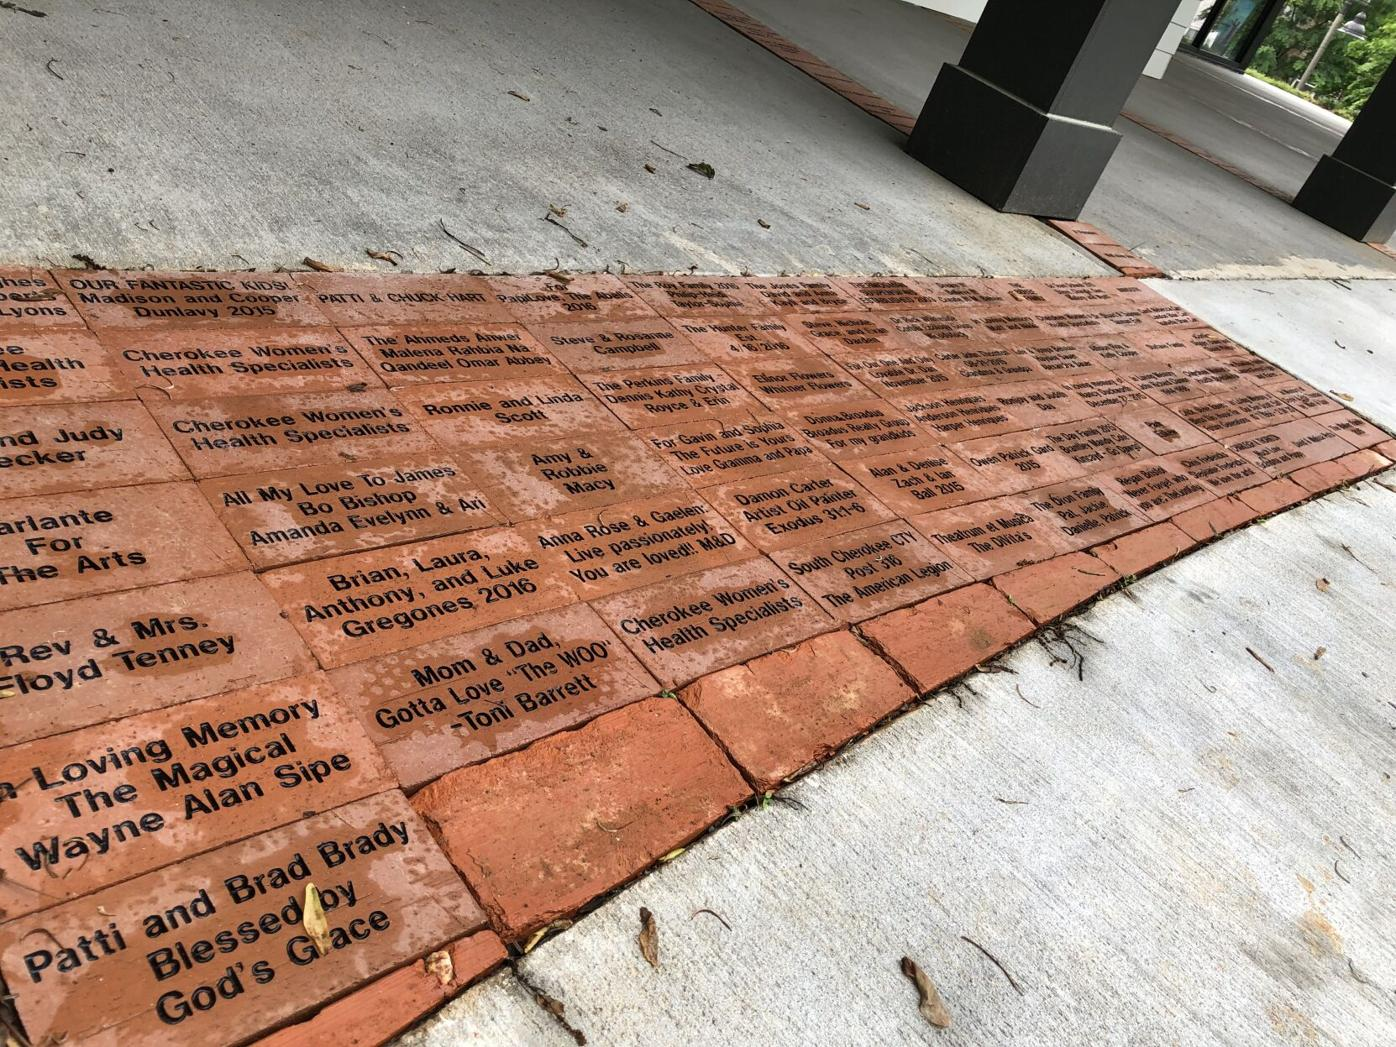 An area of bricks at the front showcases names of people who helped [sic] raised funds for the creation of the arts center. Ethan Johnson